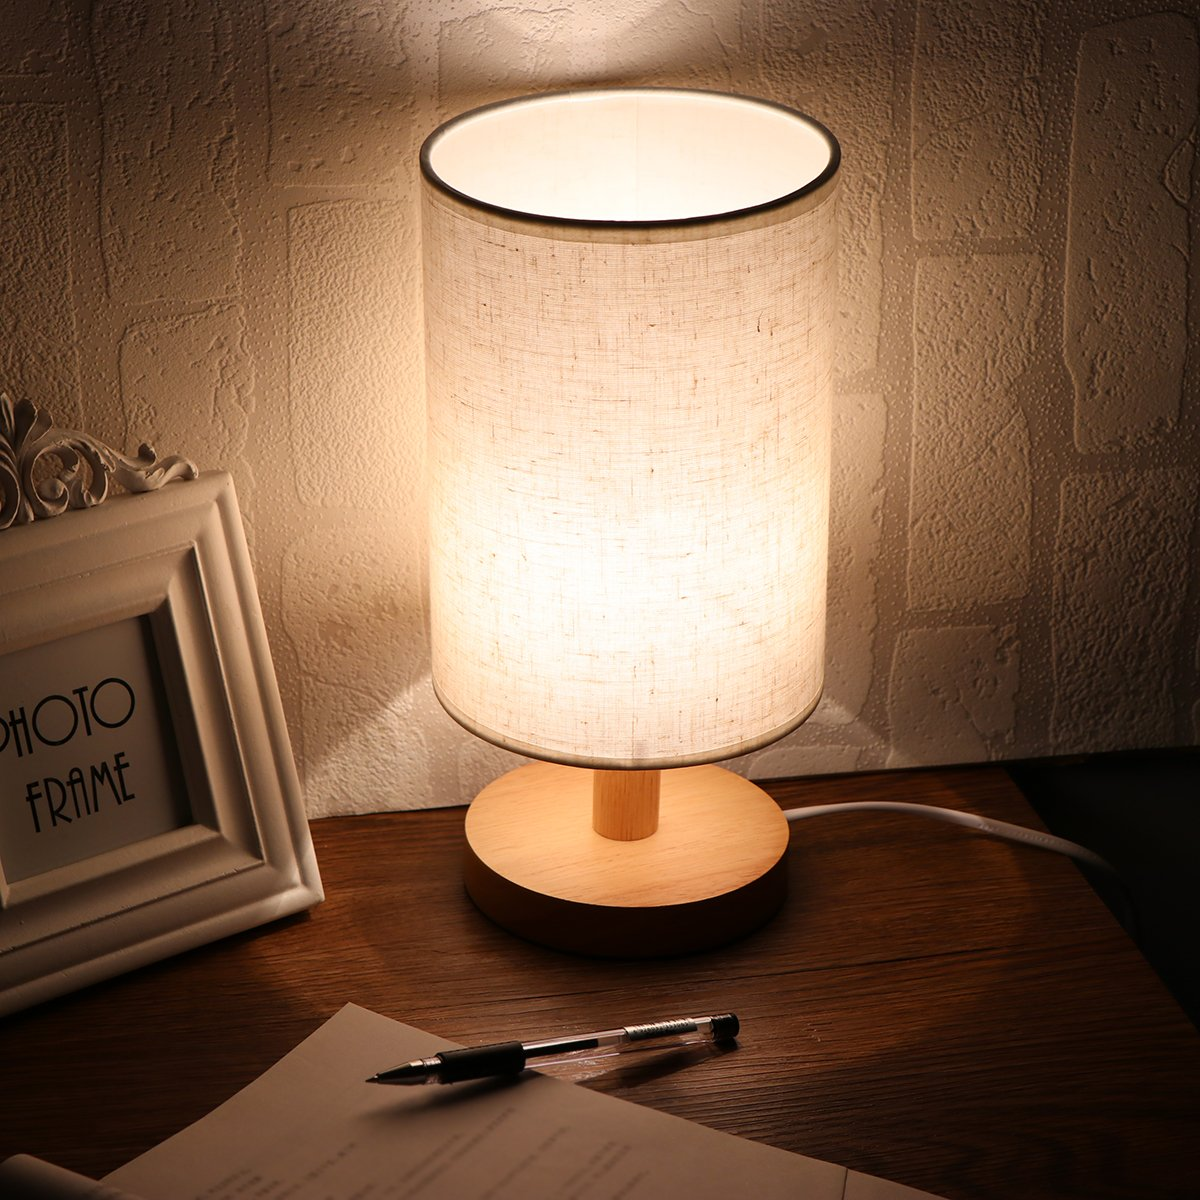 Clearance Bedside Table Lamp, Solid Wood Bedside Desk Nightstand Dimmable Light Lamp with E27 RGBW LED Bulb and Remote, 12 Colors, Timing/Flash or Smooth Mode for Bedroom, Living Room, Kids Room